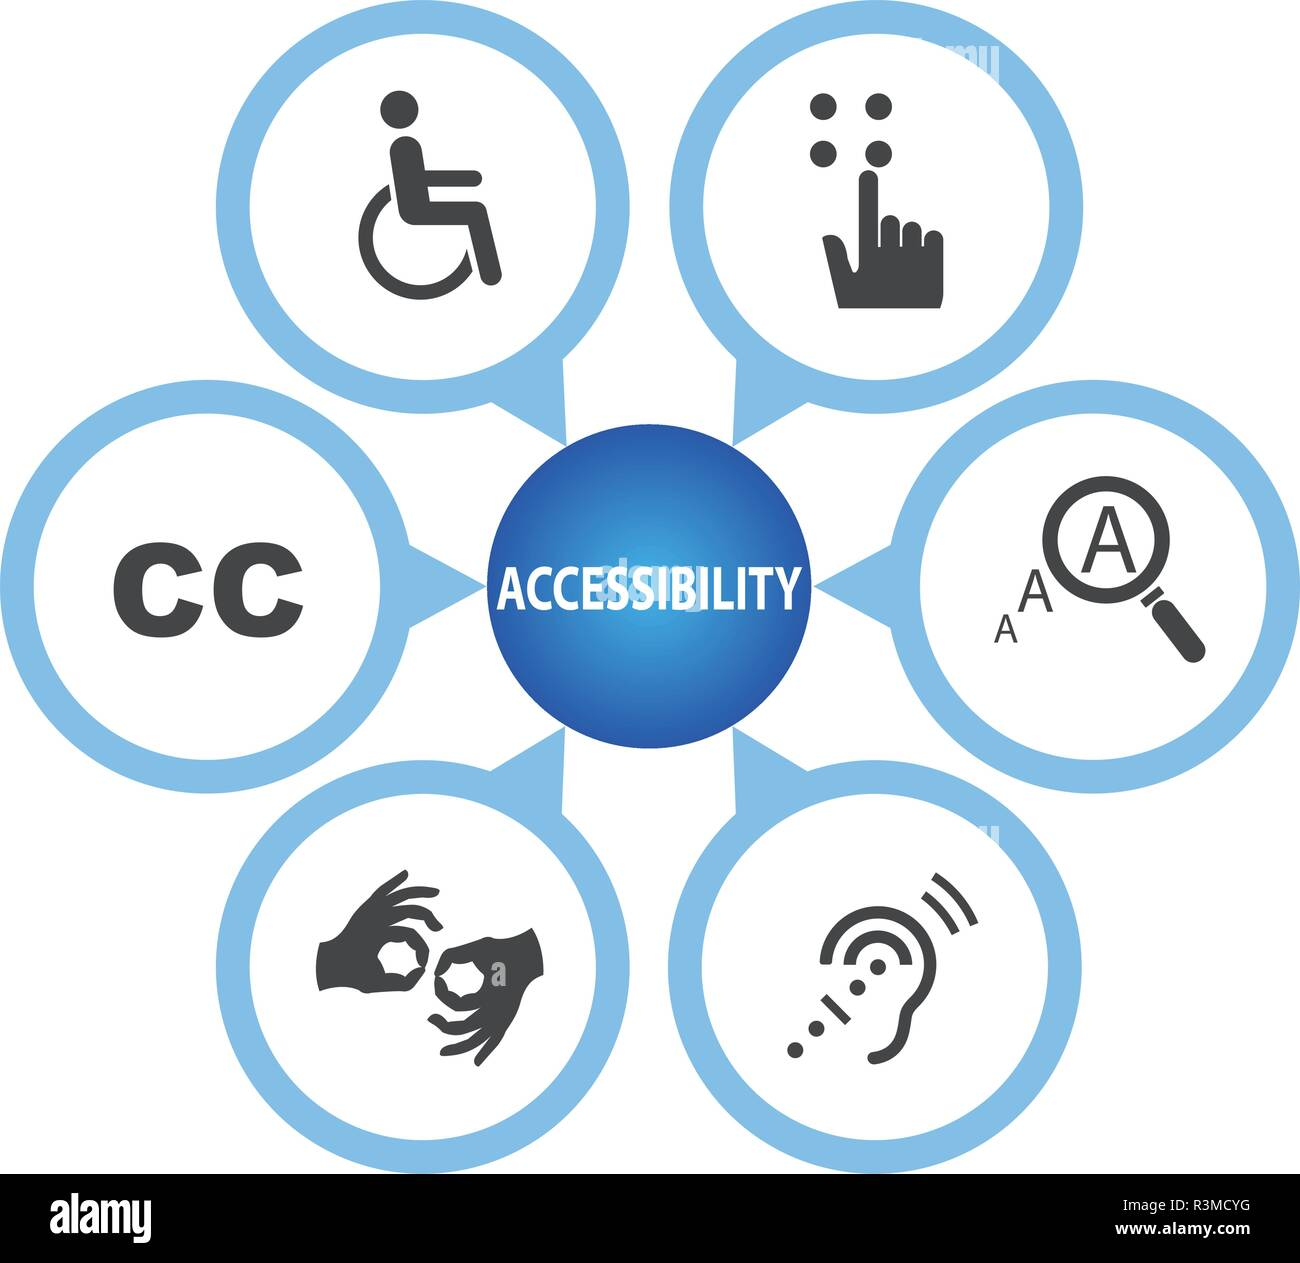 Accessibility icon set - Stock Image